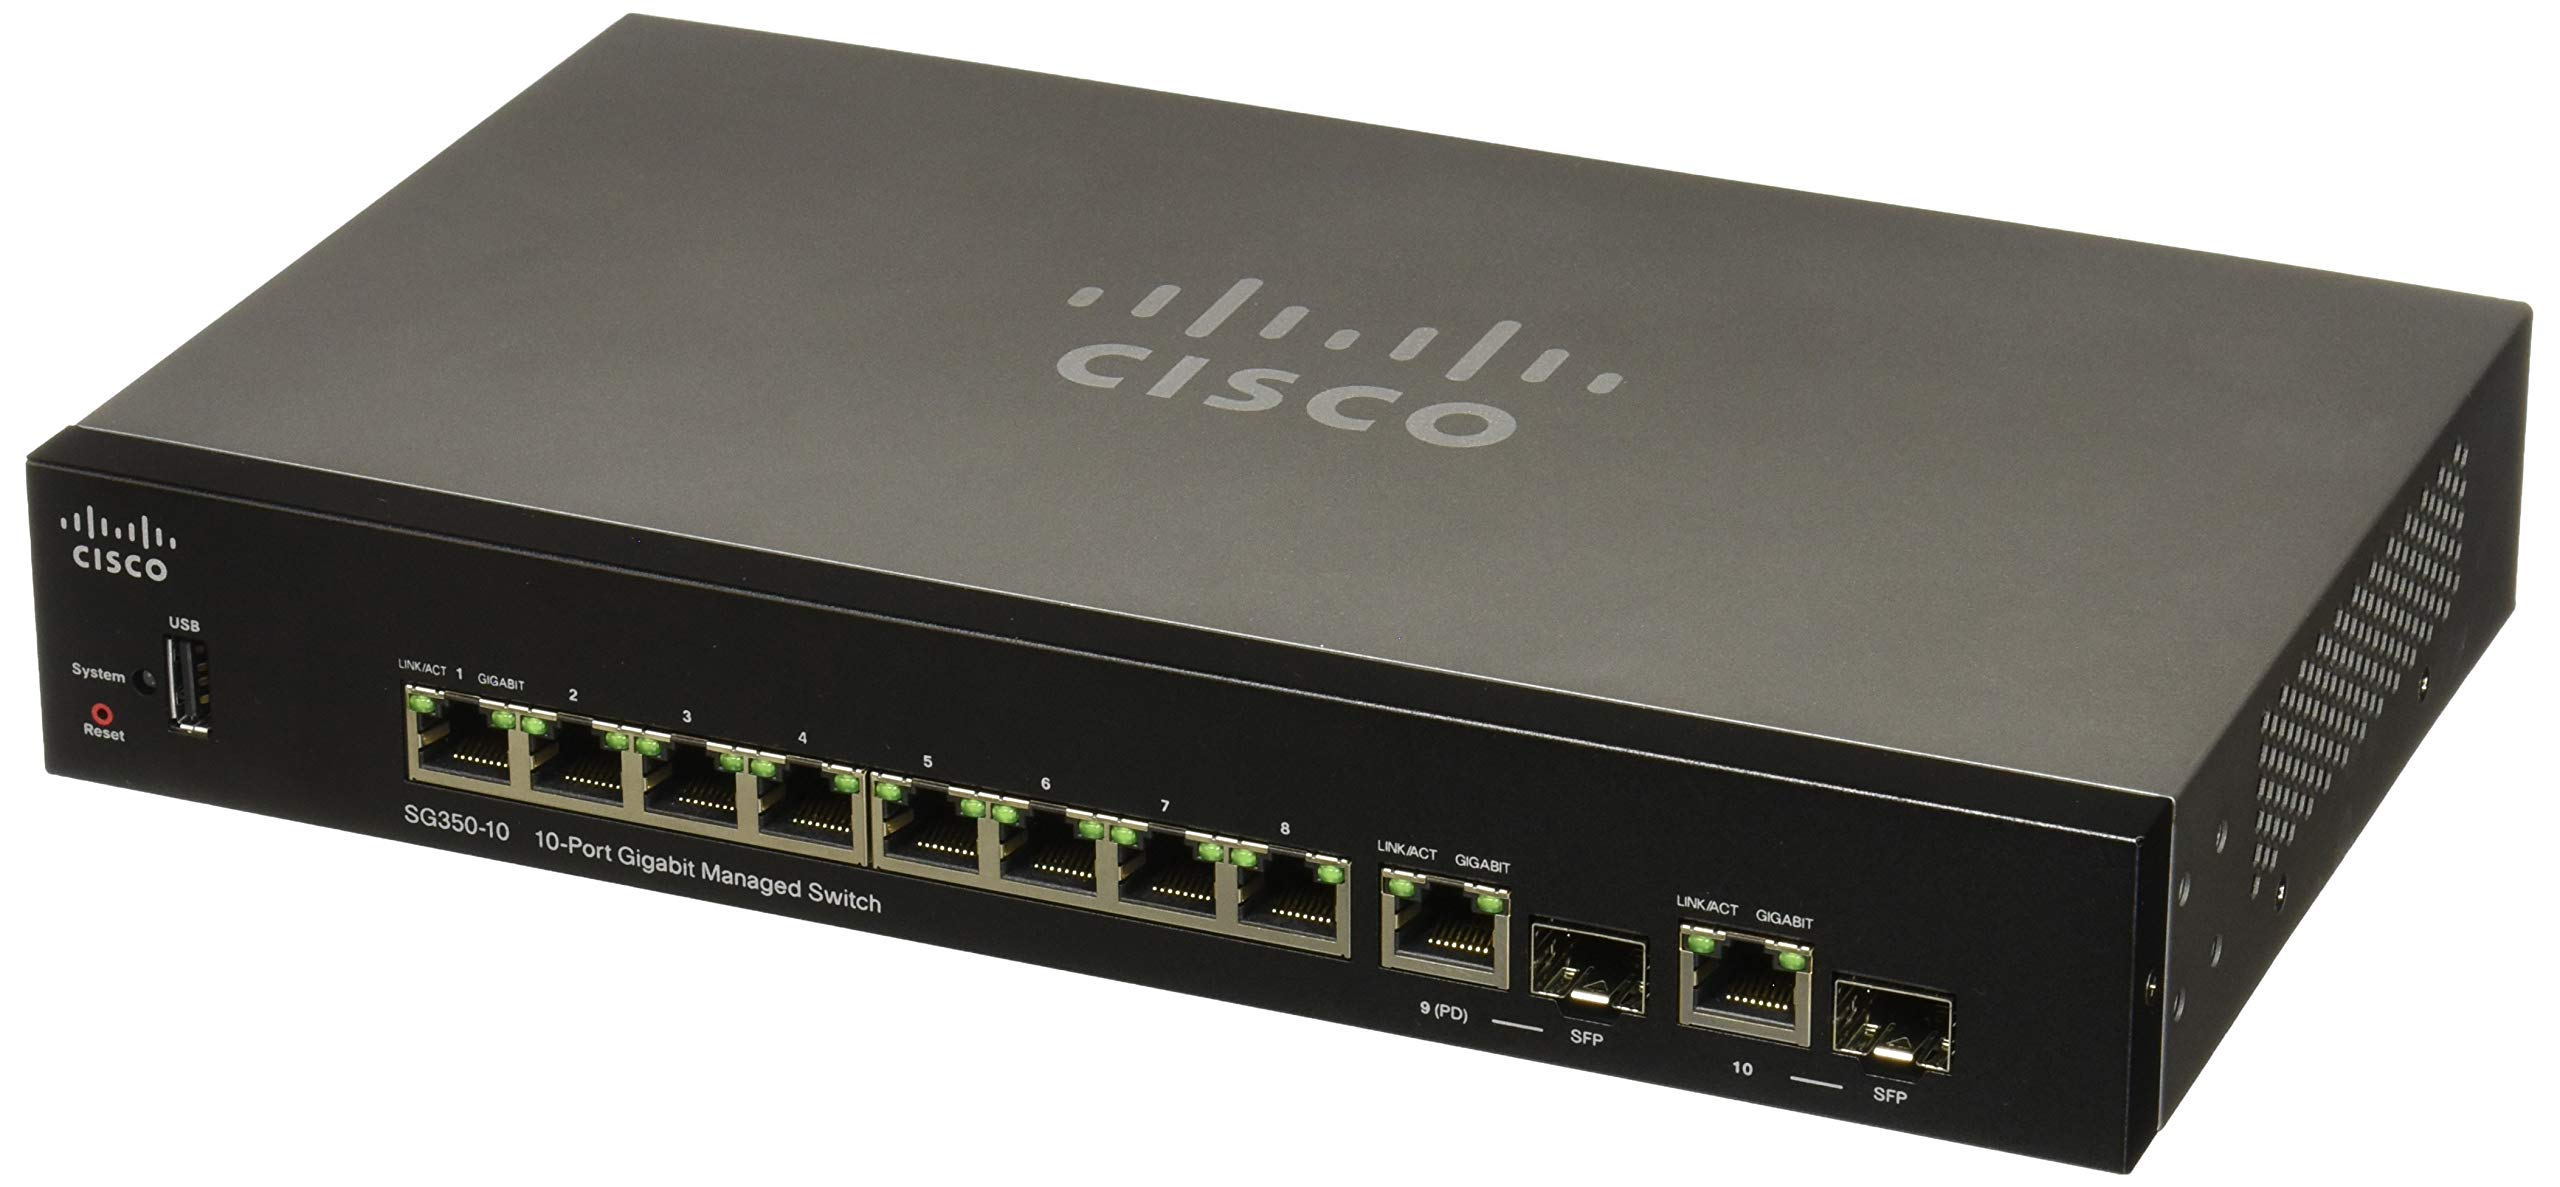 CISCO SYSTEMS Sg350 10-Port Gigabit Managed Switch (SG35010K9NA) by Cisco Systems